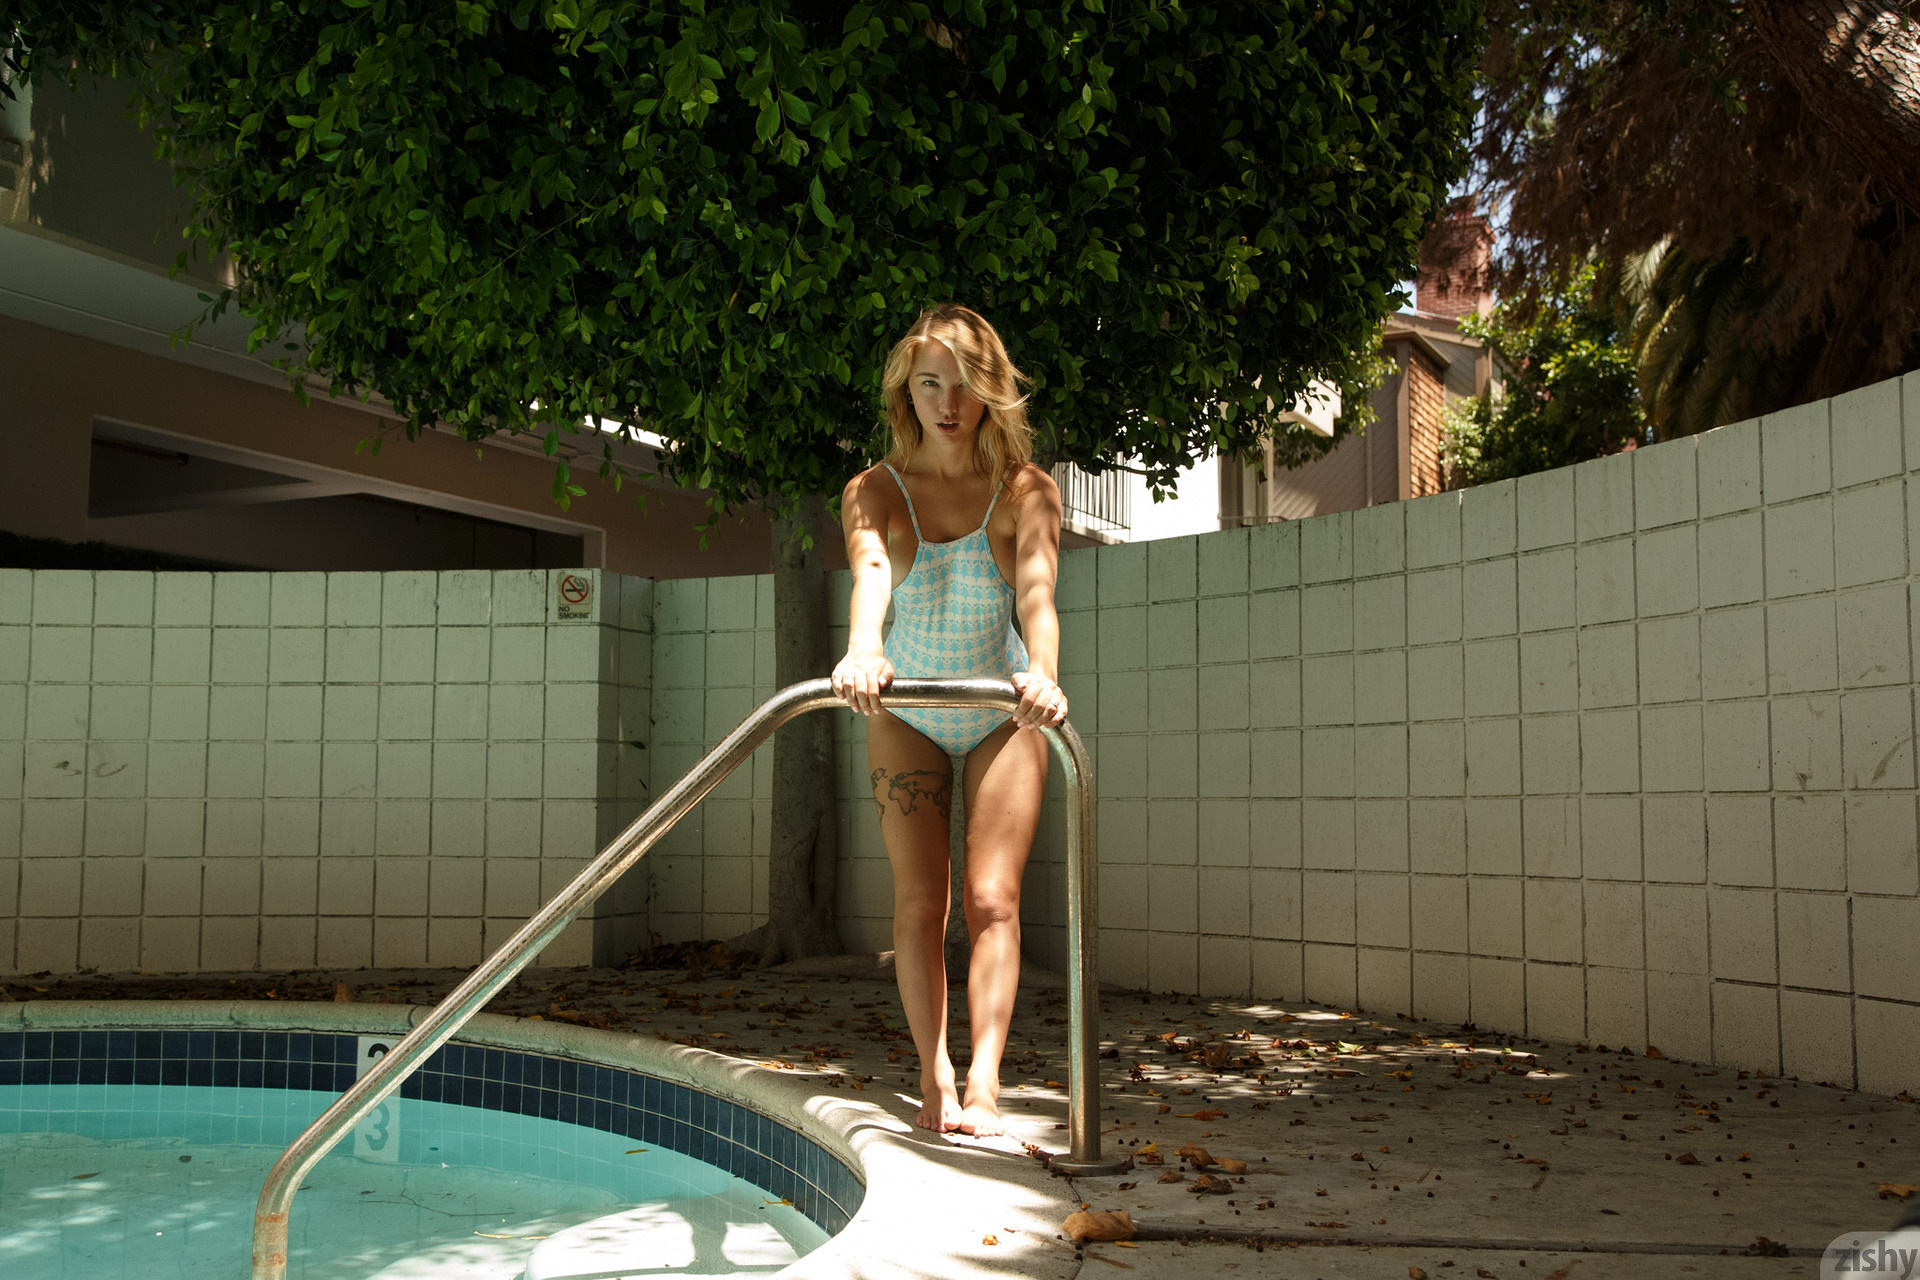 Lily Ivy Poolside Feminism 0019